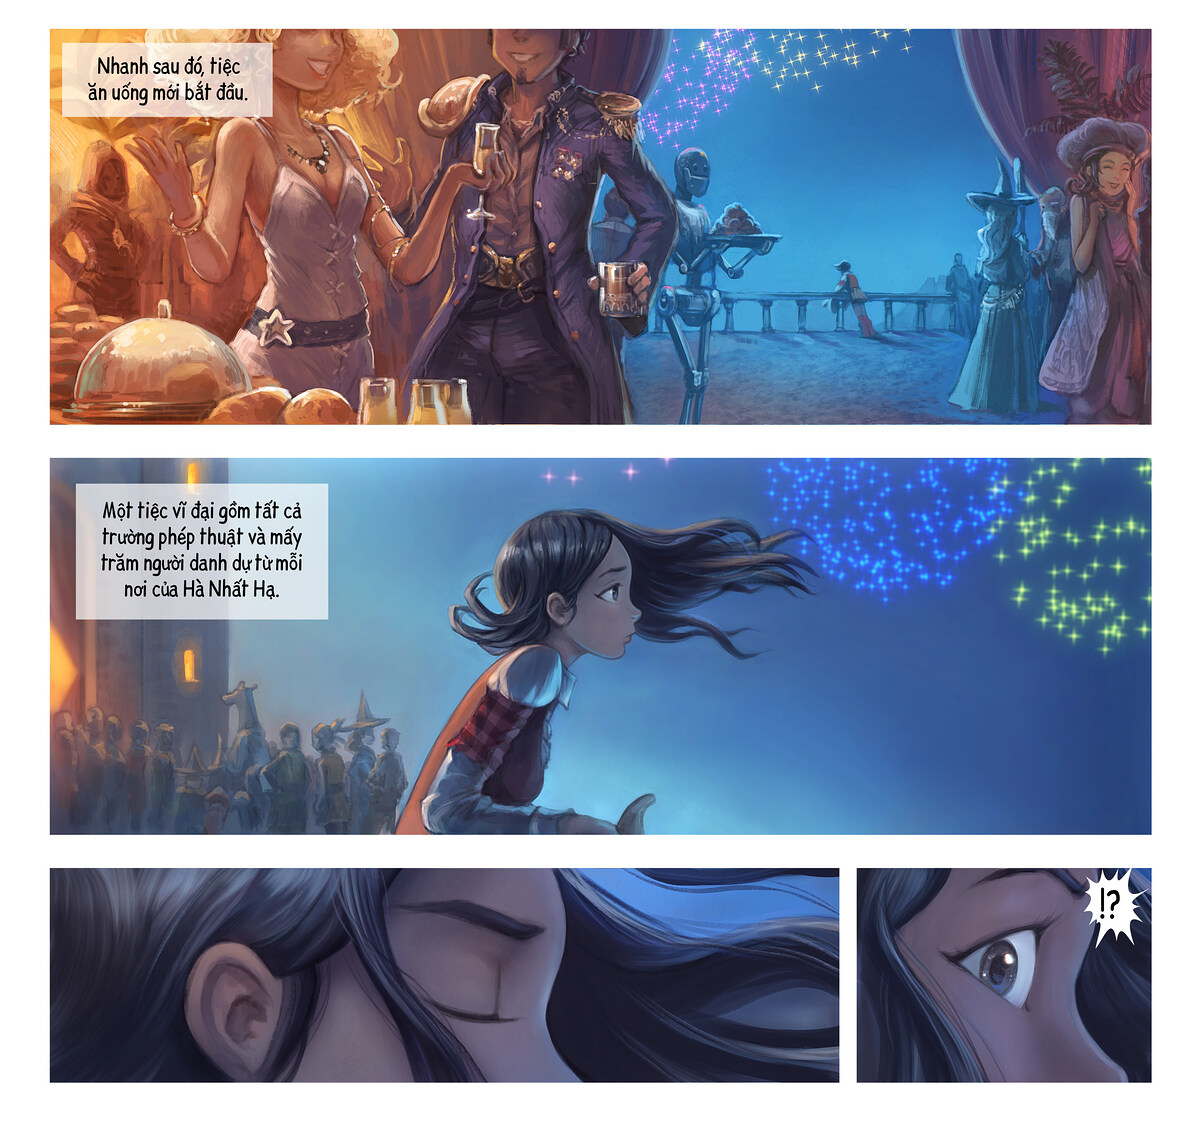 A webcomic page of Pepper&Carrot, Tập 28 [vi], trang 3